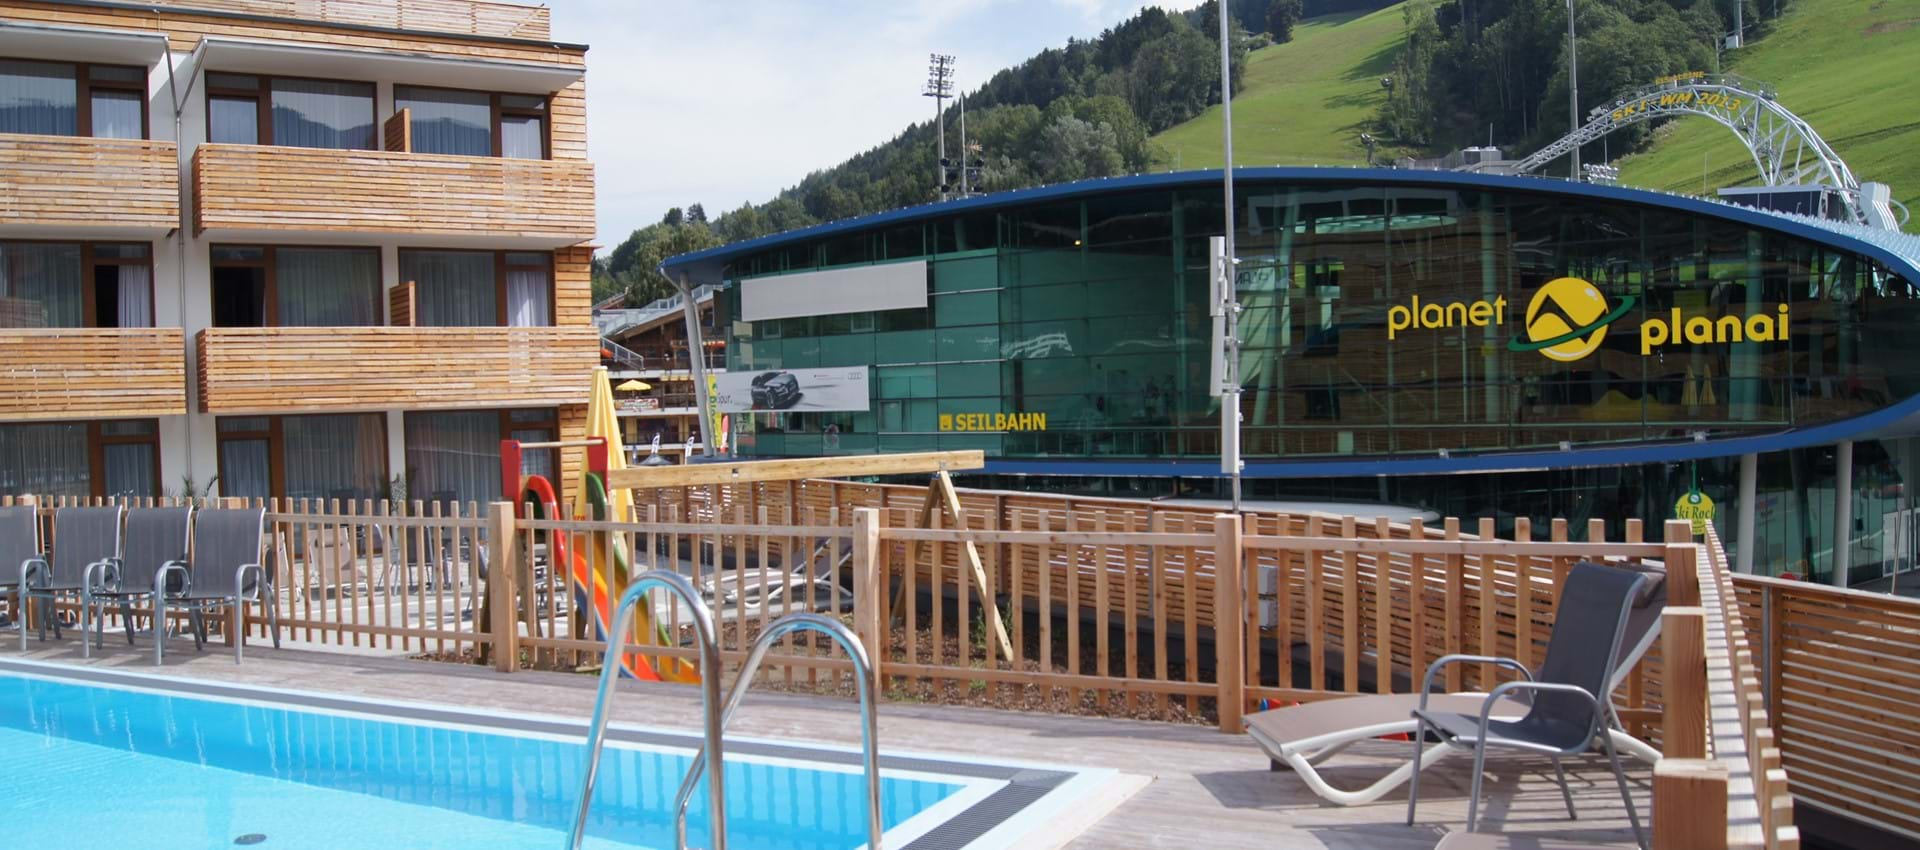 Pool im Hotel Planai in Schladming